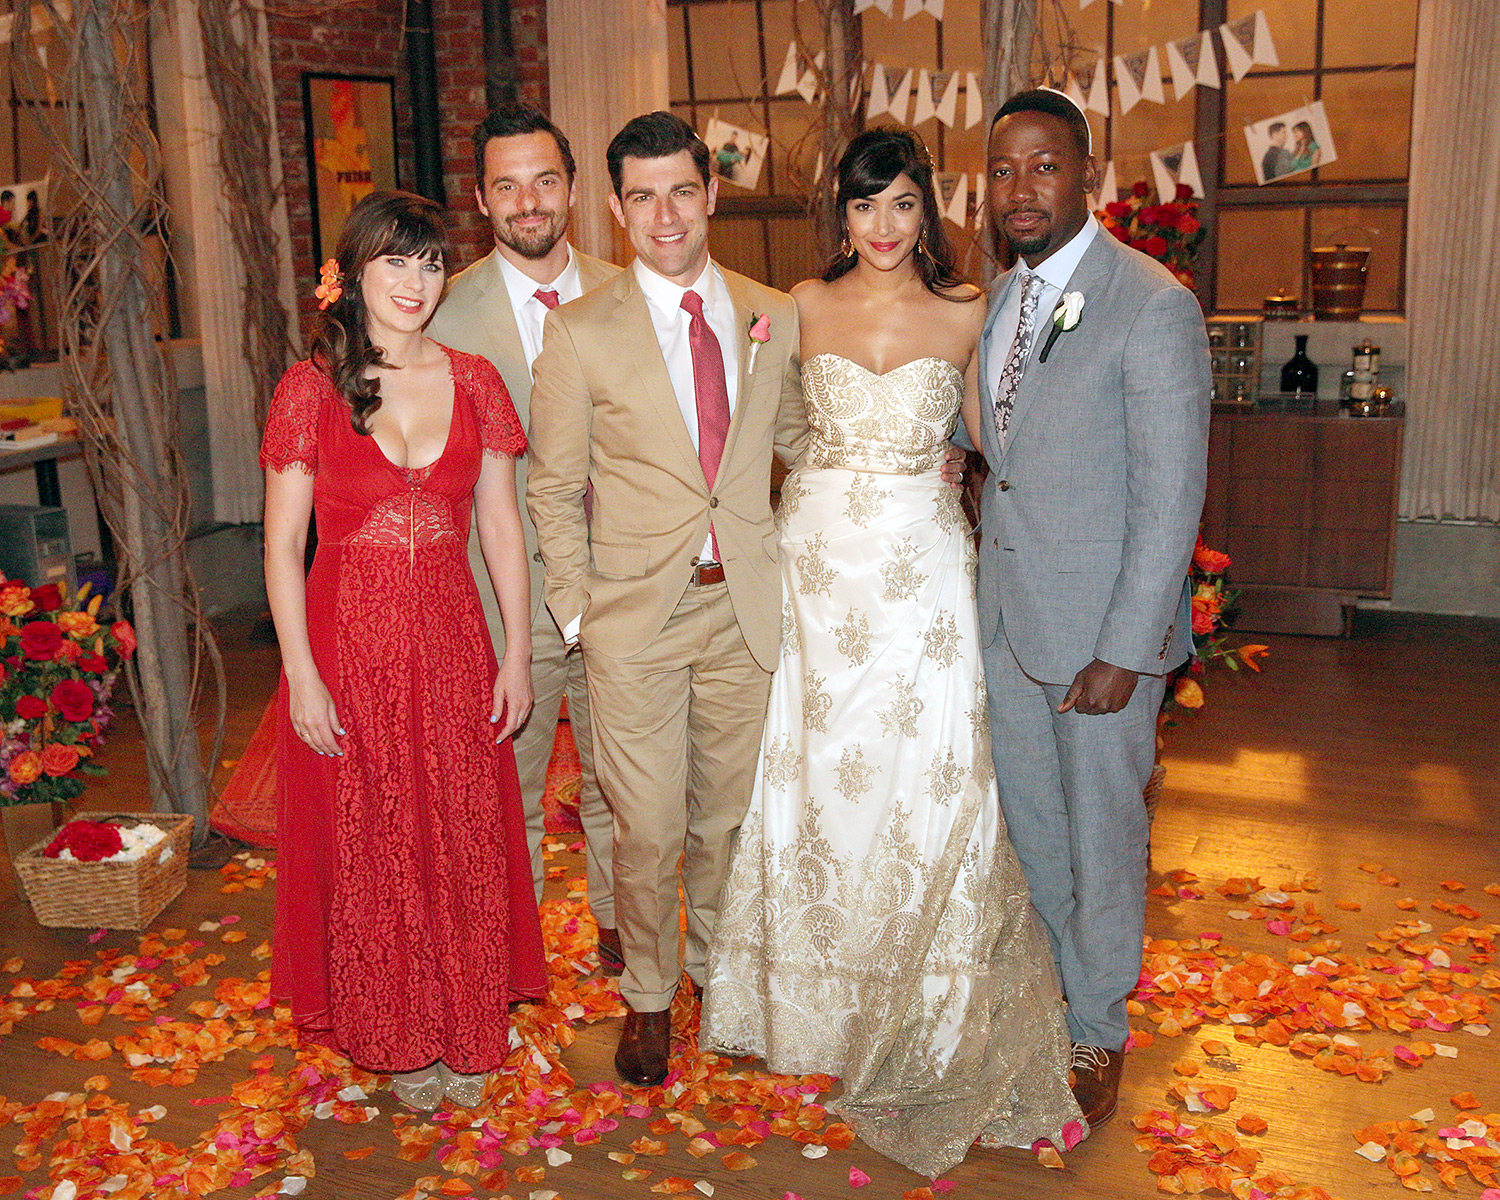 New Girl\'s Cece and Schmidt Wedding Photos: First Look!